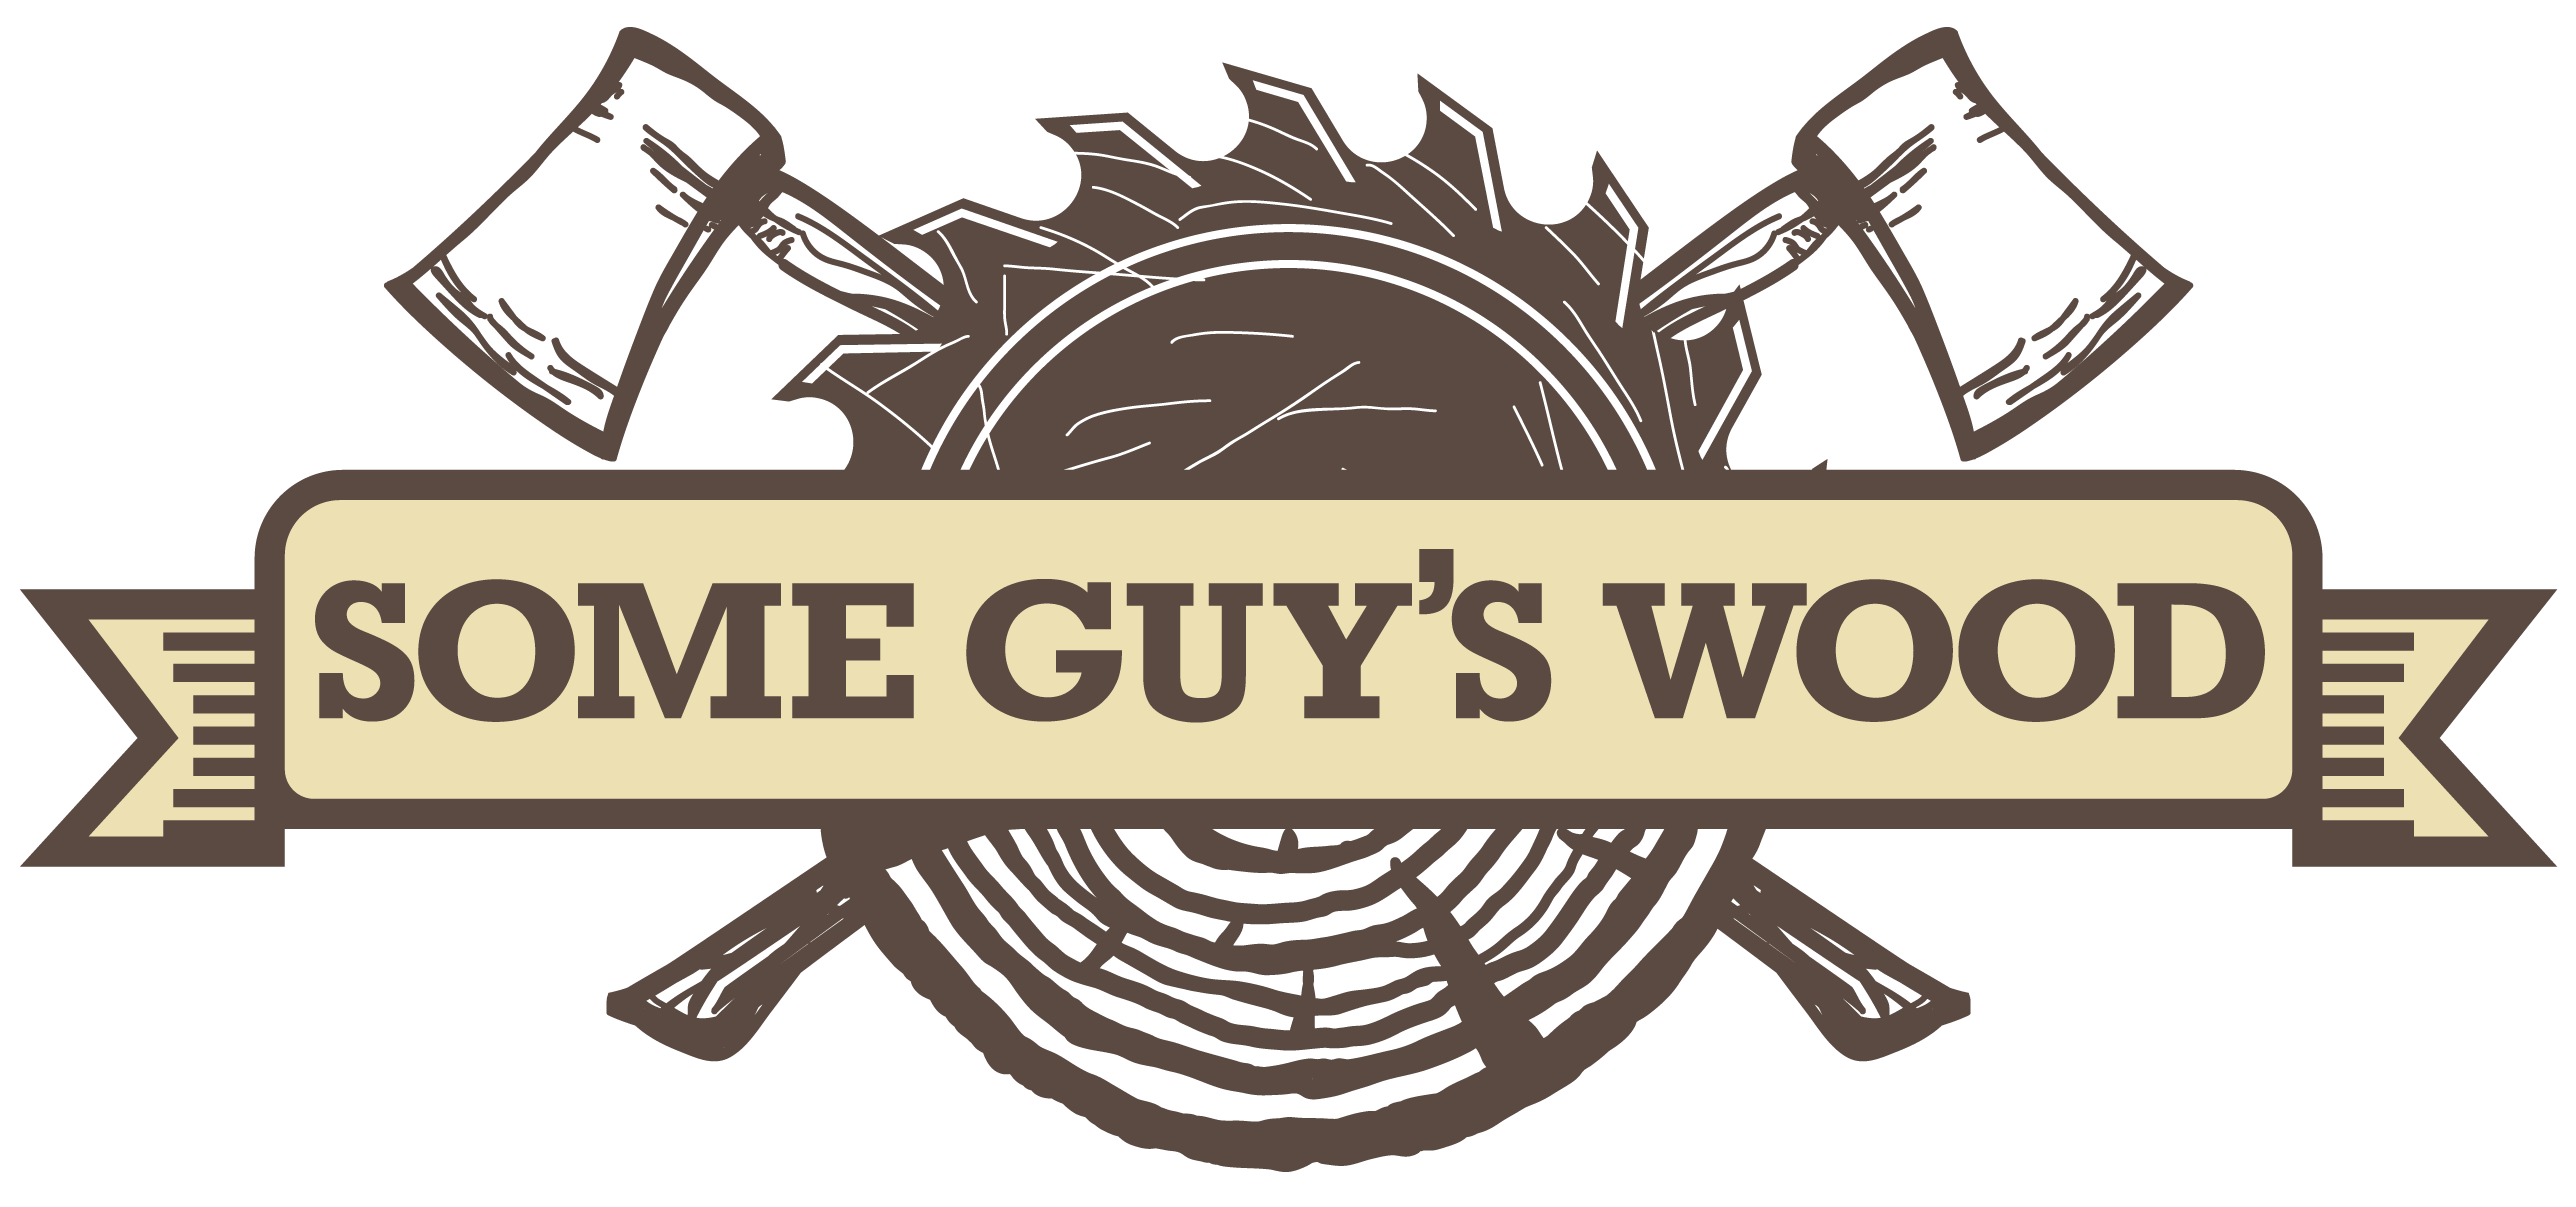 Some Guy's Wood needs a new catchy logo